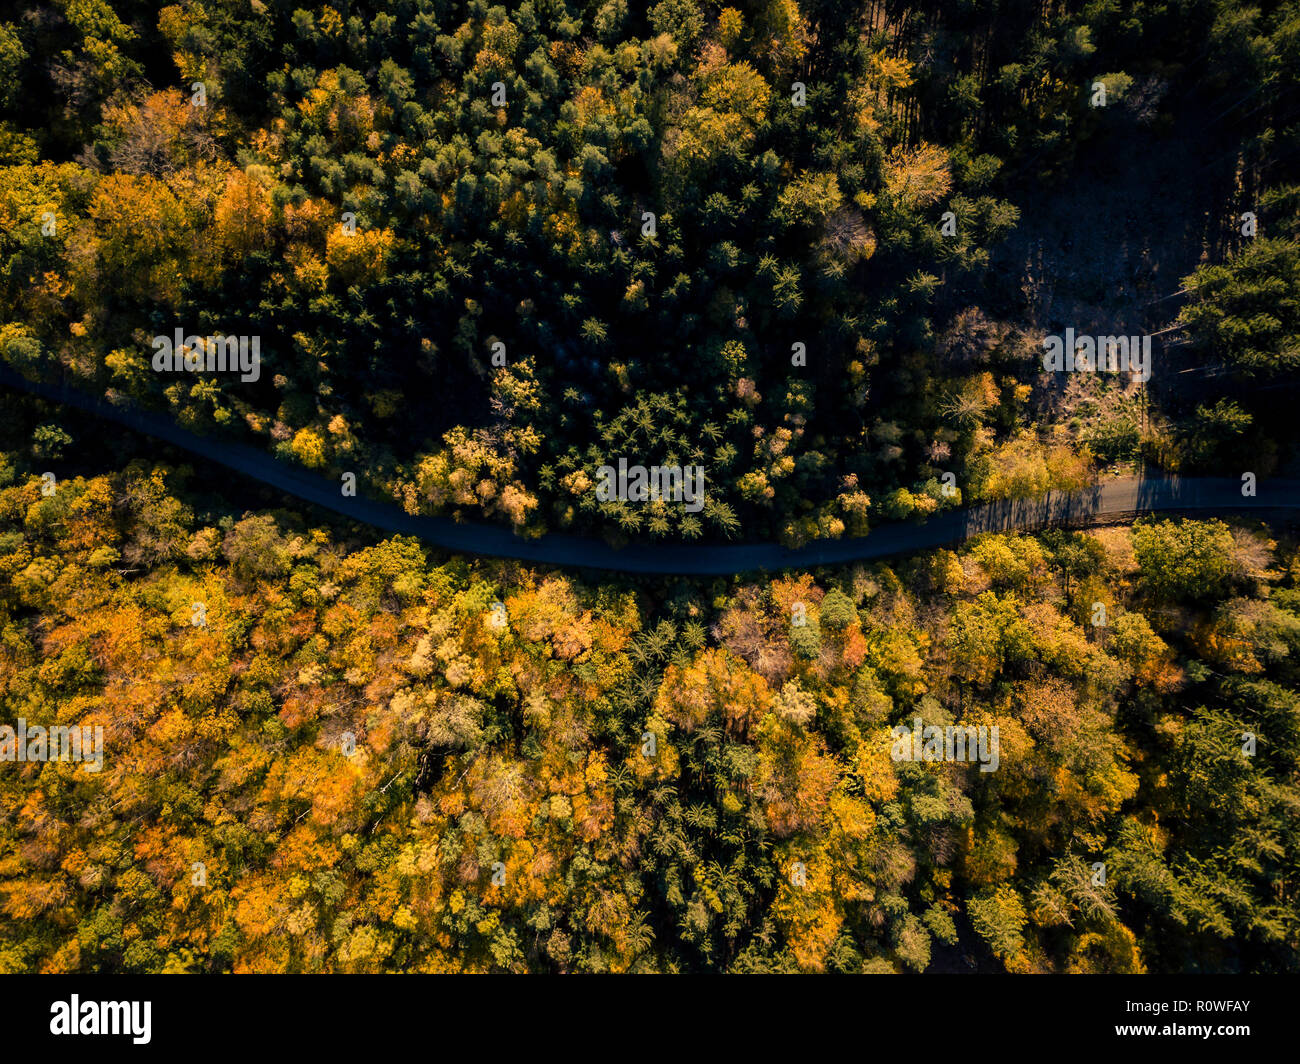 Aerial view of road in the autumn forest, from above view, drone point of view. Inspiring autumn season landscape background. - Stock Image